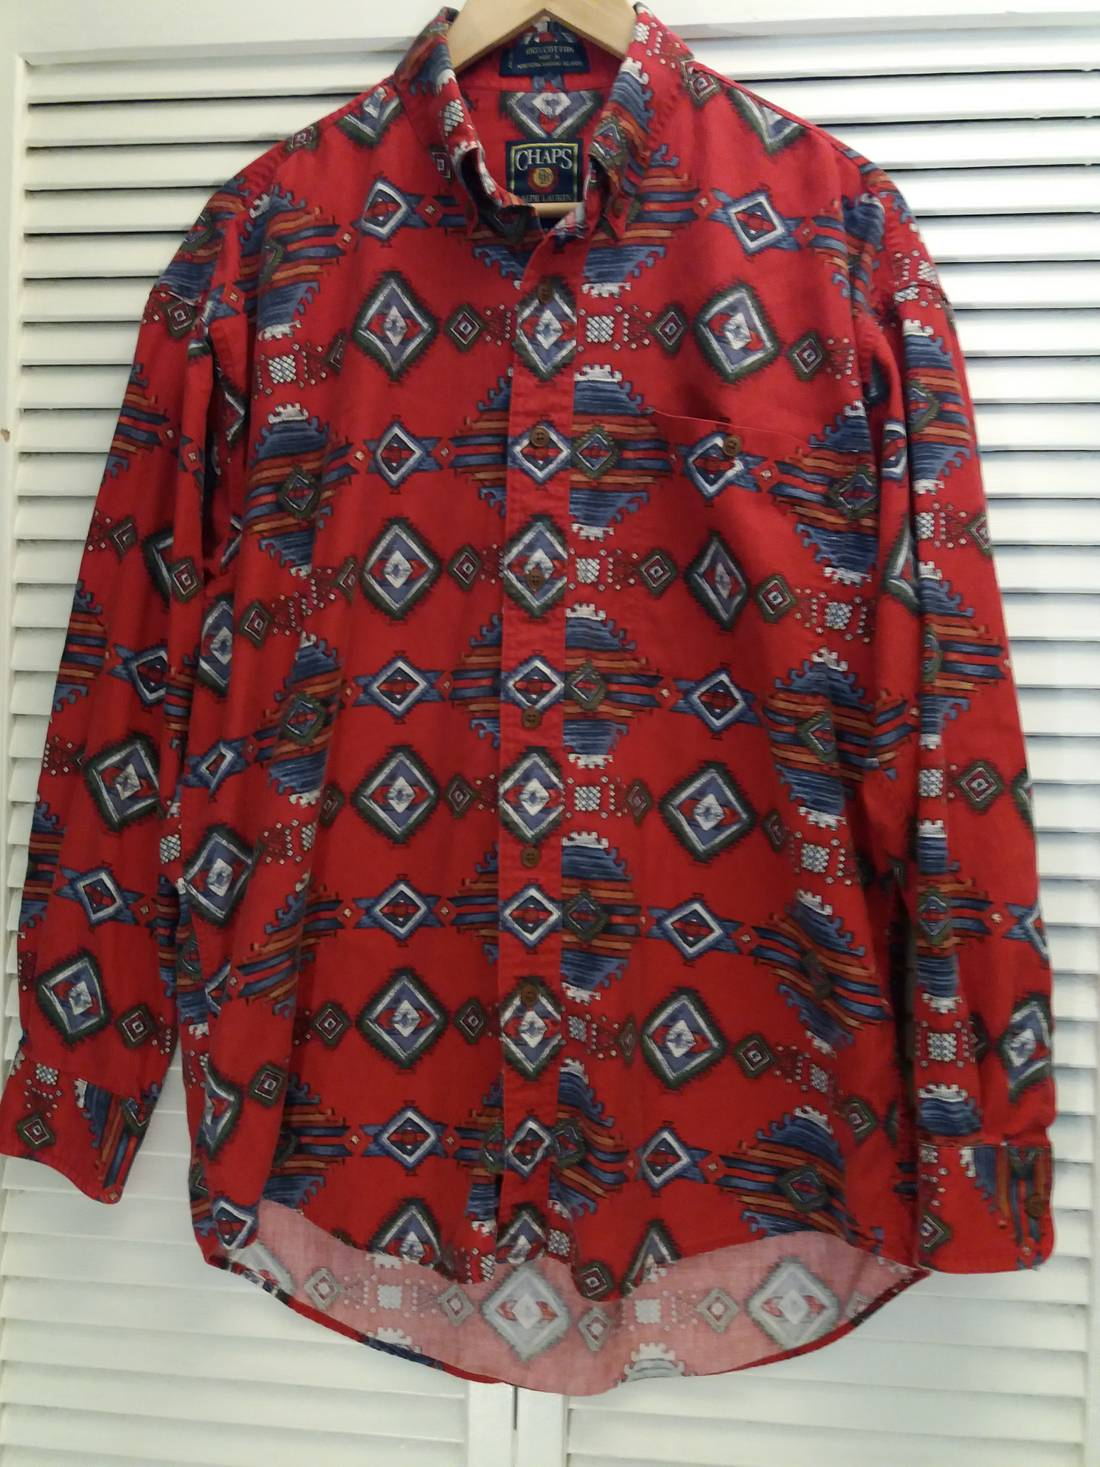 62c37899467b ... cheap vintage rare 90s vtg chaps by ralph lauren country western  pattern longsleeve button up shirt reduced womens rl 103 grey red ...